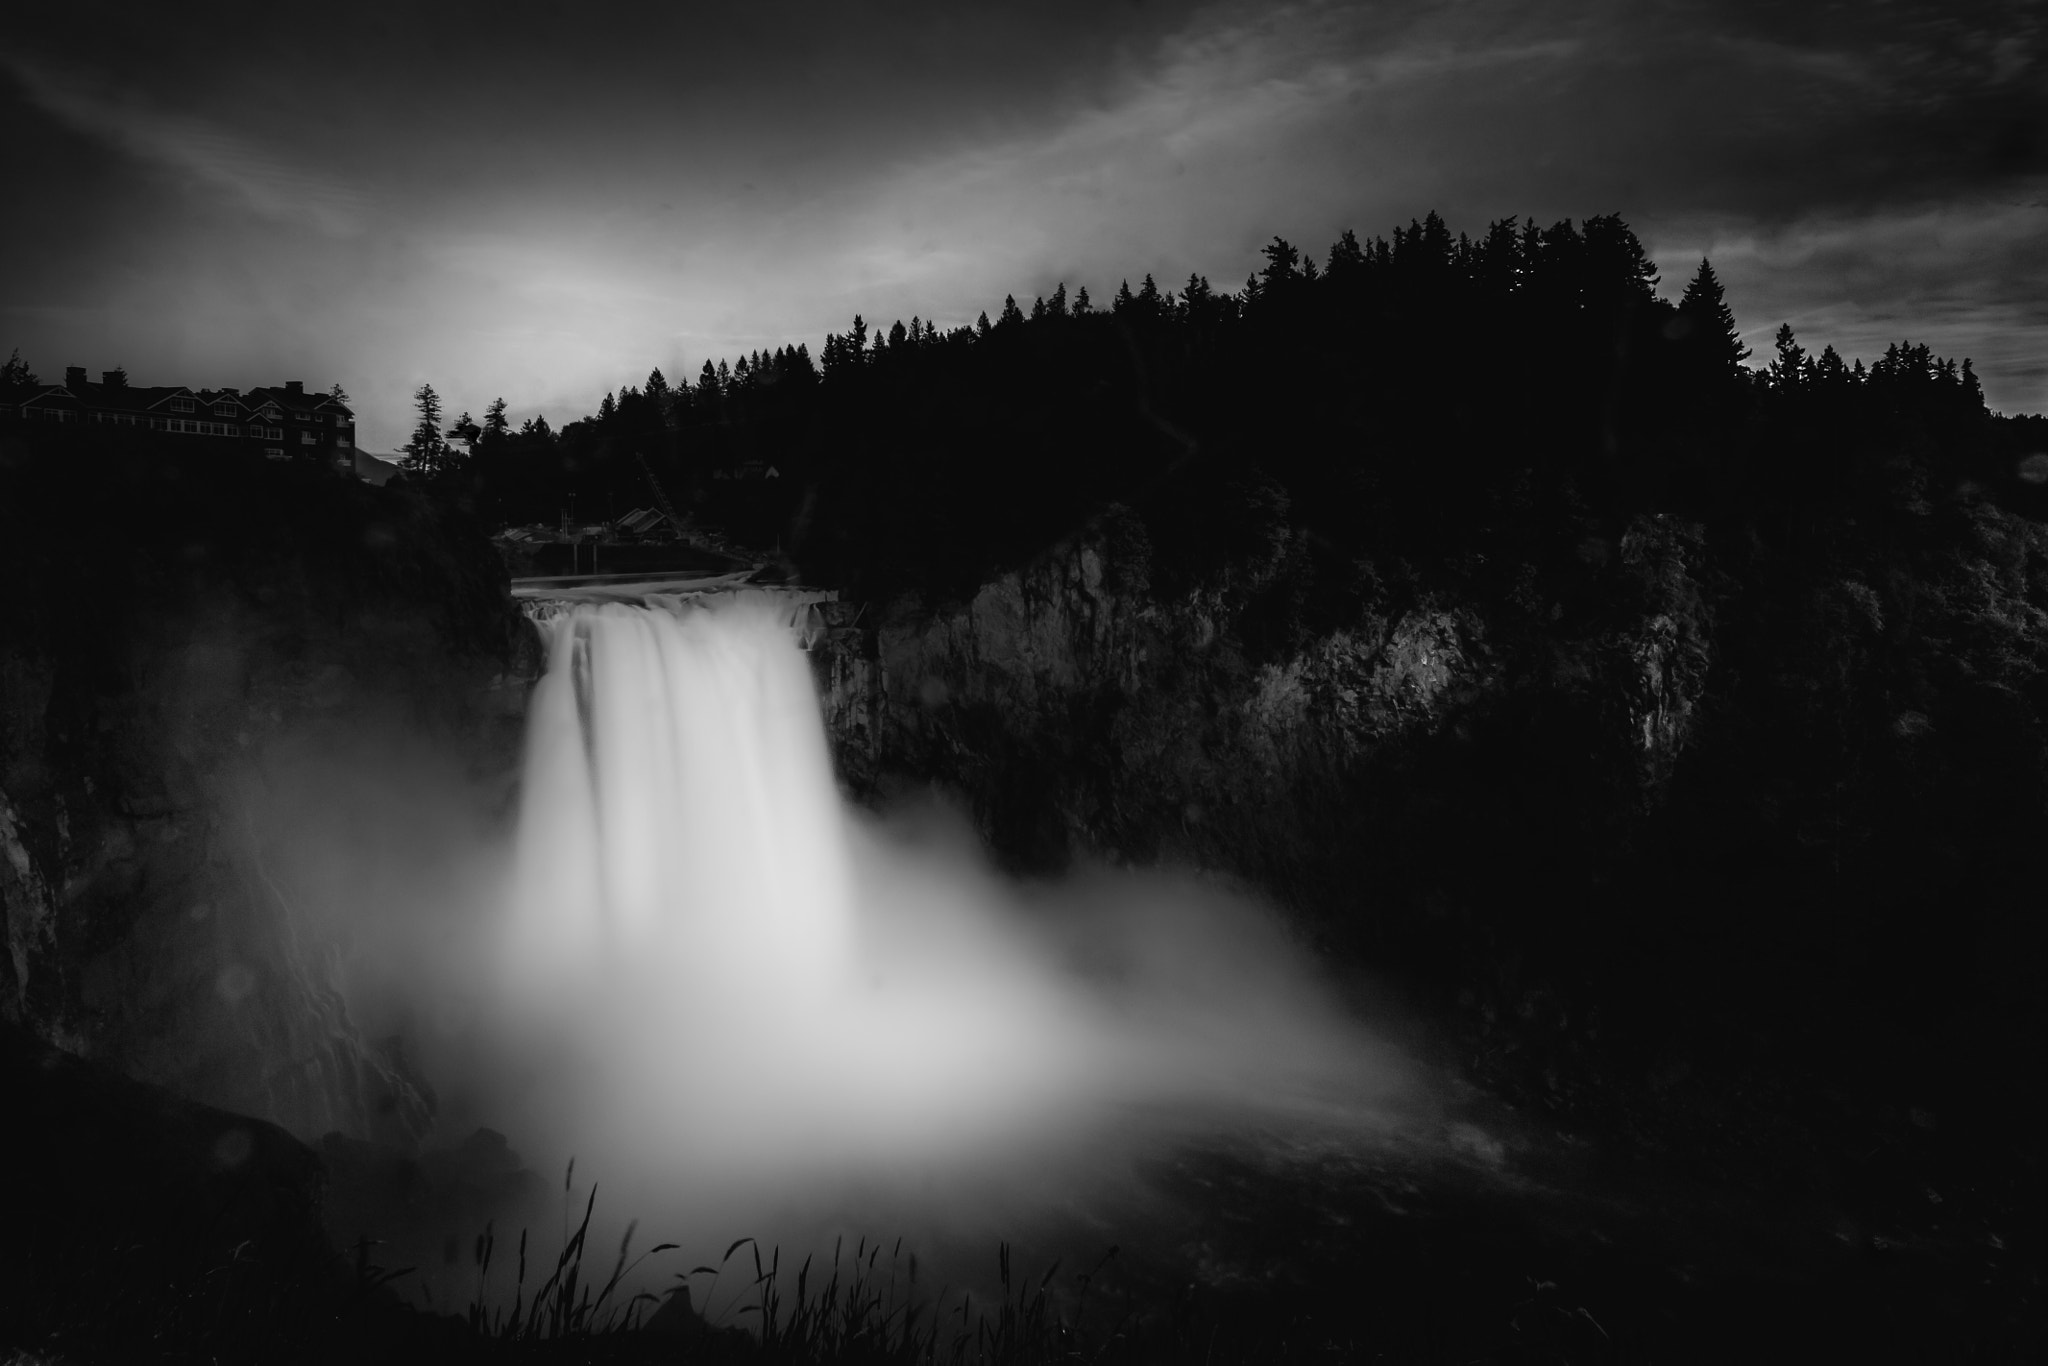 Photograph The Grand Fall by Gonripsi Mobsono on 500px